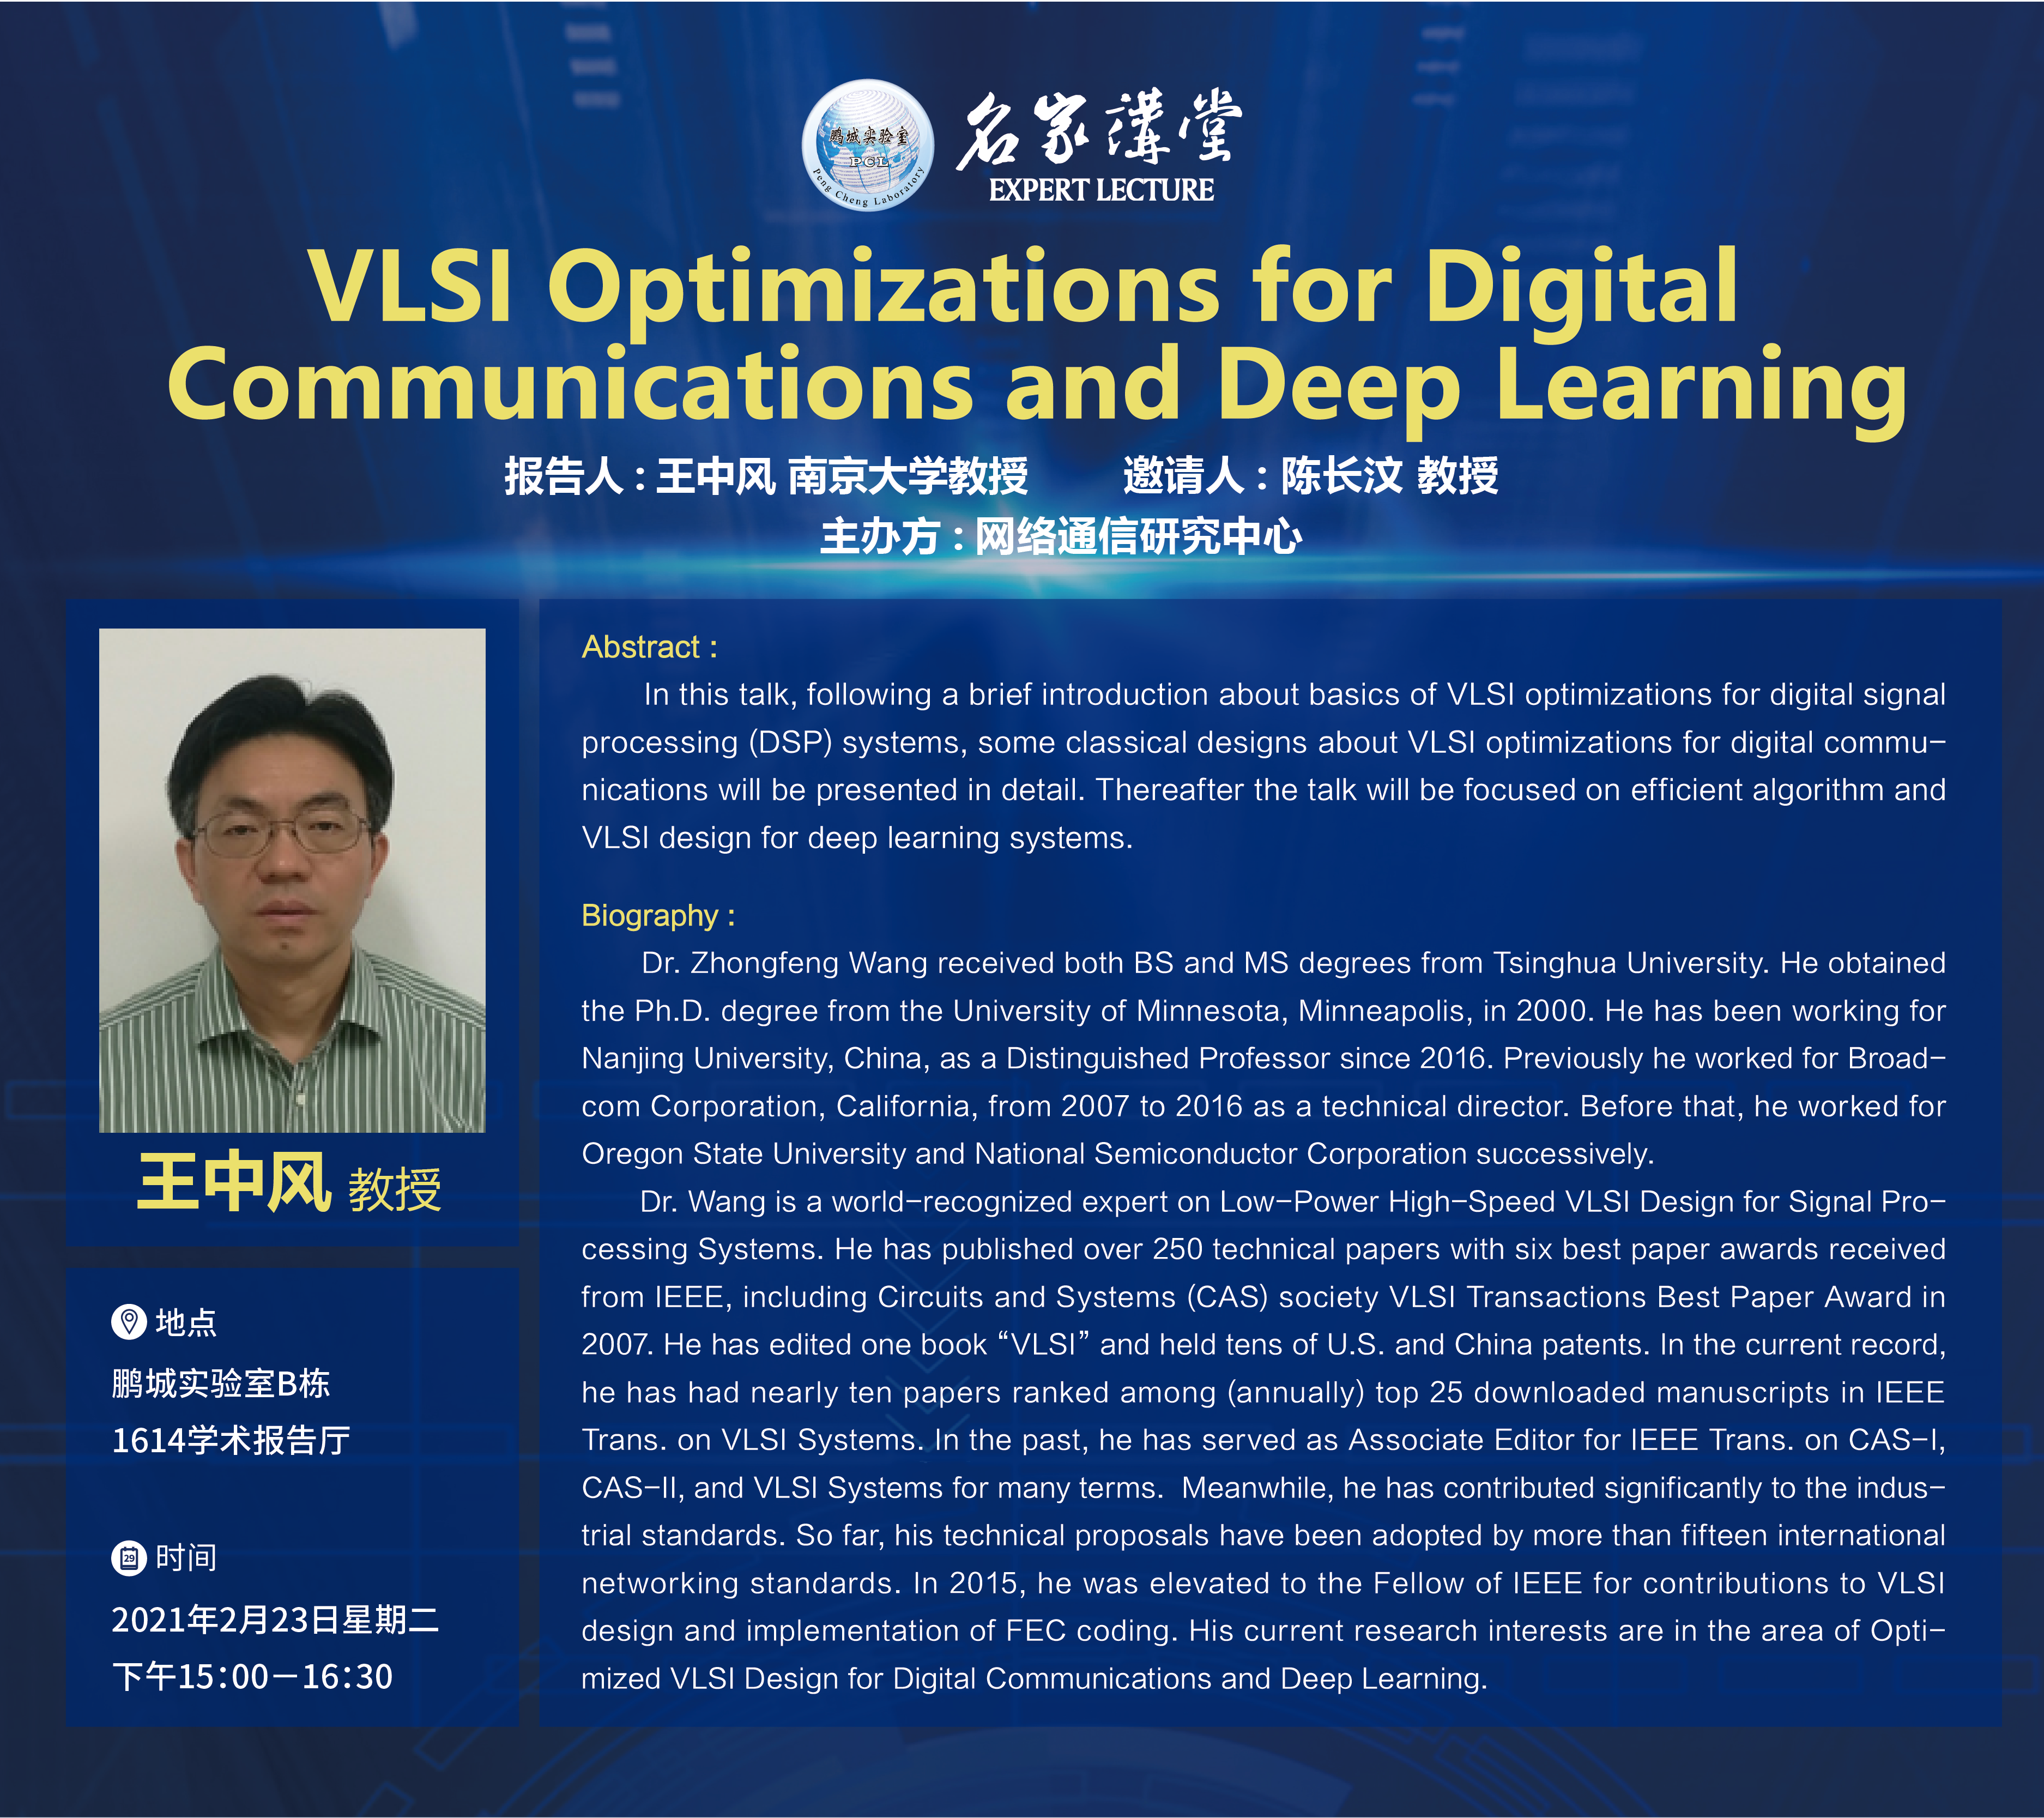 【名家讲堂】VLSI Optimizations for Digital Communications and Deep Learning